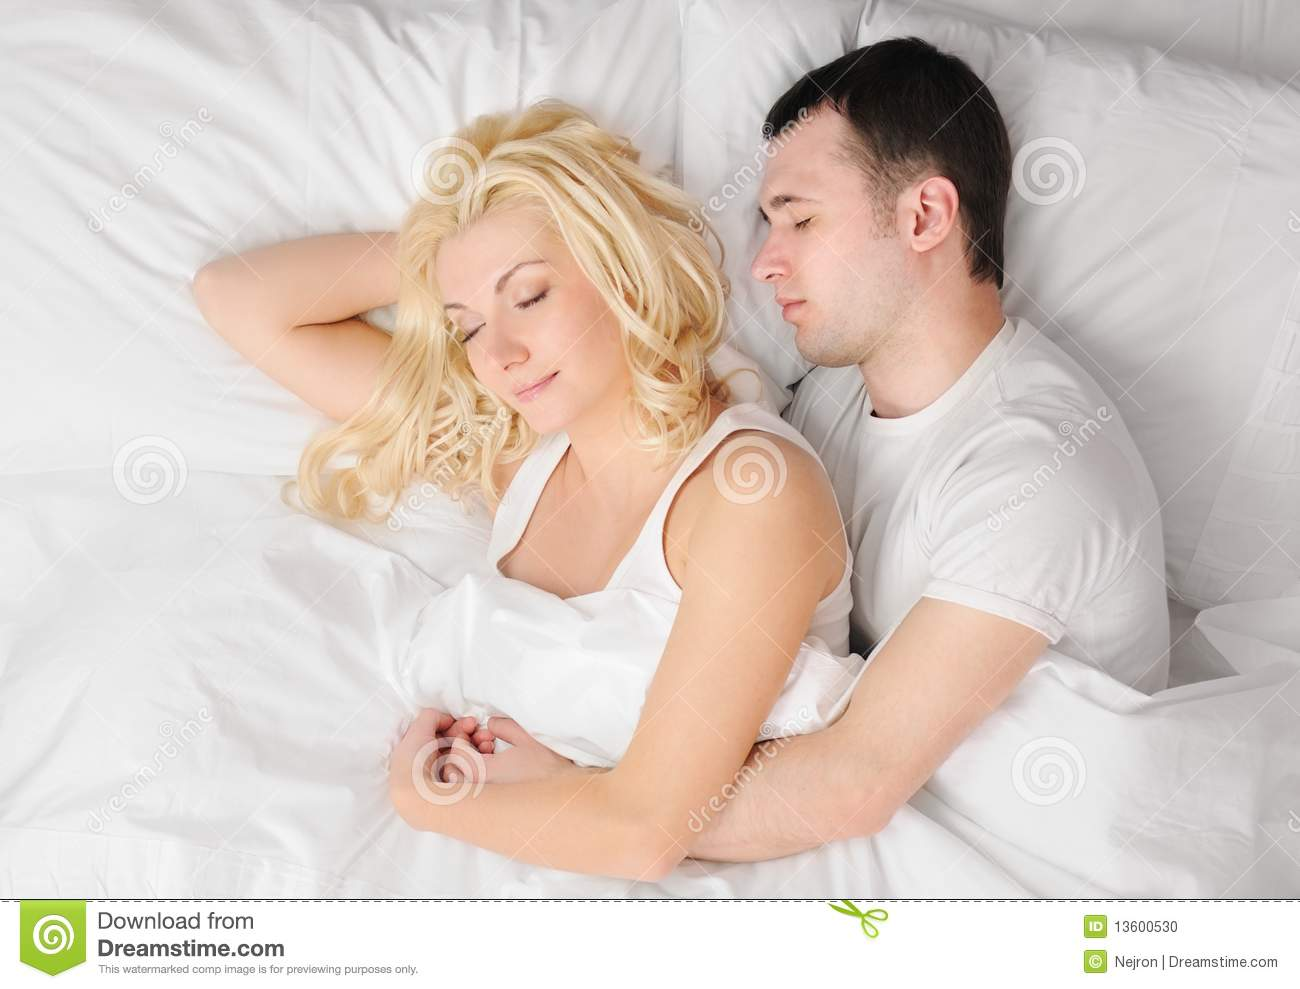 Couple Sleeping In A Bed Stock Photo - Image: 13600530